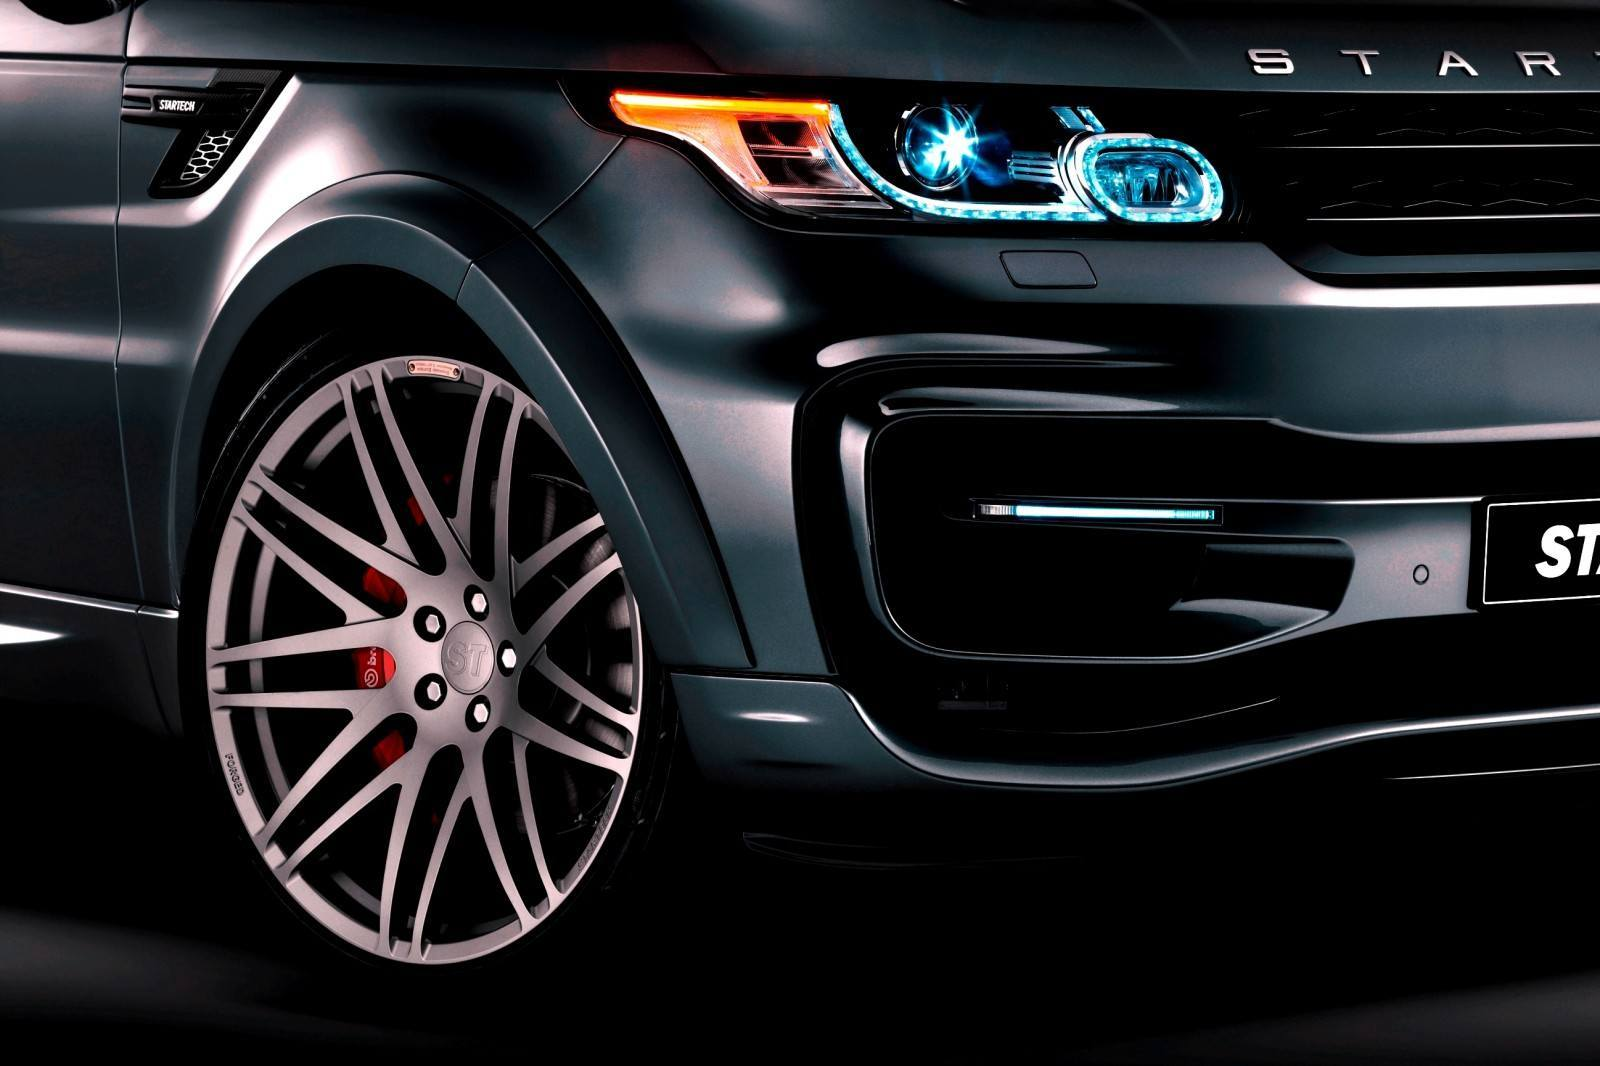 2014 Range Rover Sport STARTECH Widebody on 23-Inch Wheels Looks Amazing 6